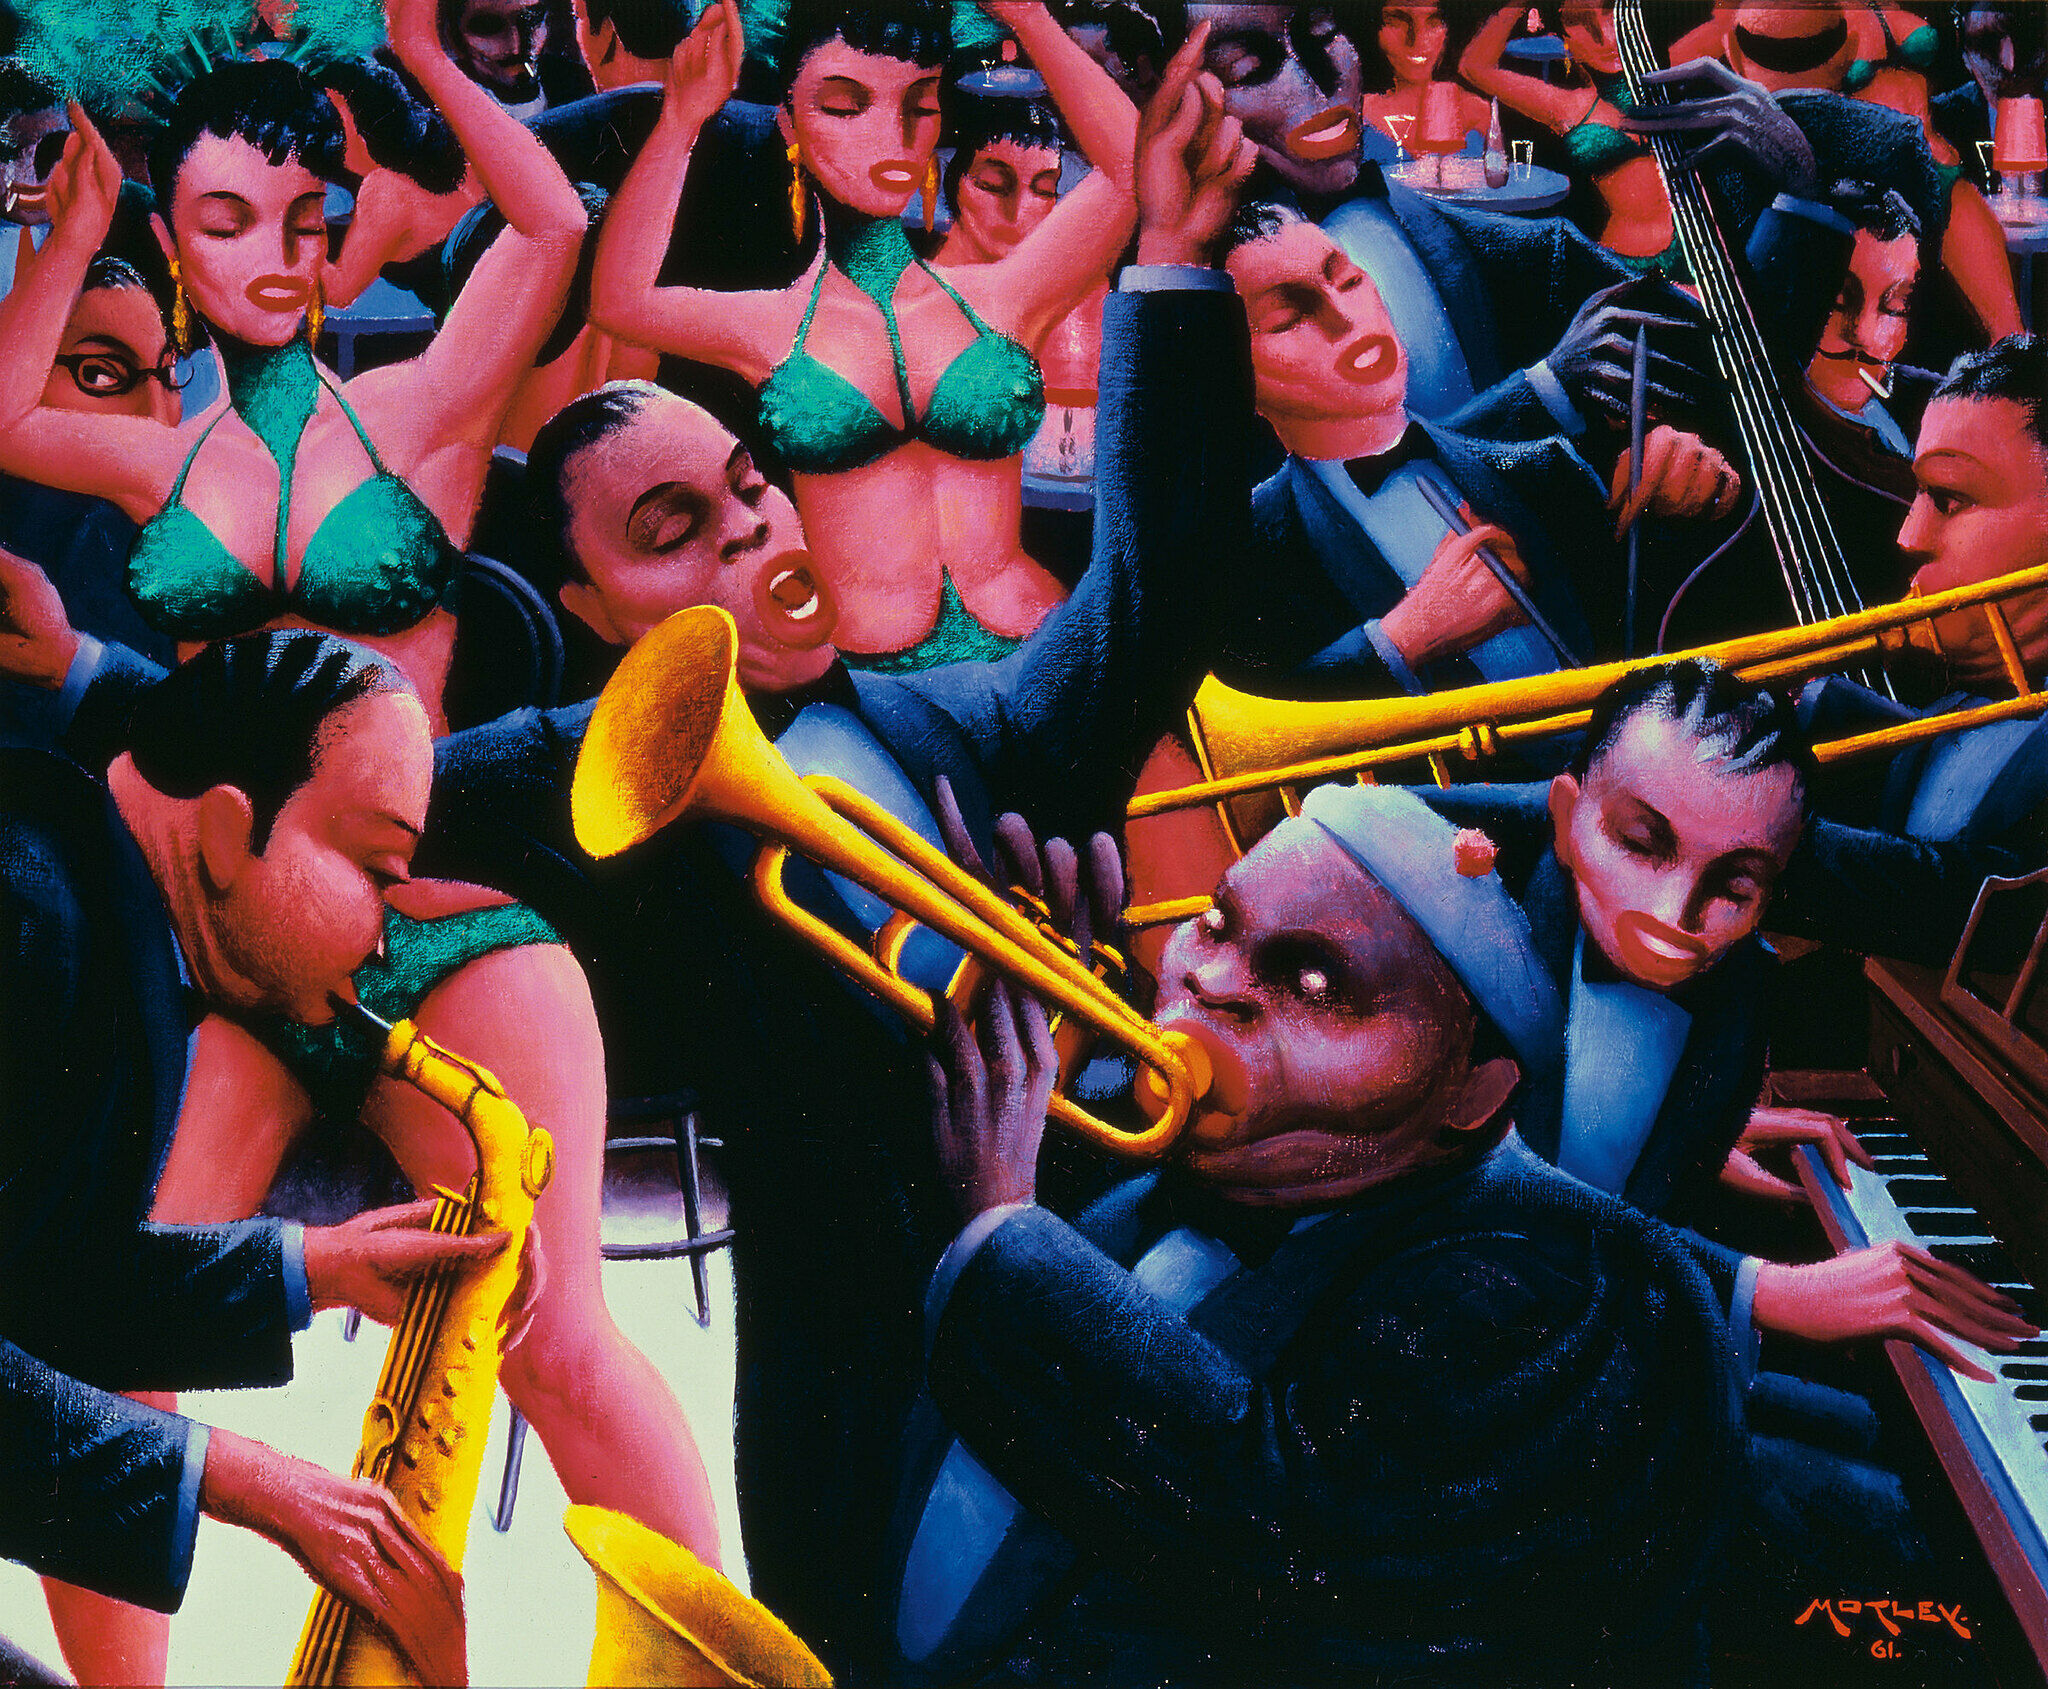 A jazz band with a trumpet, piano, trombone and saxophone with dancers in the background.